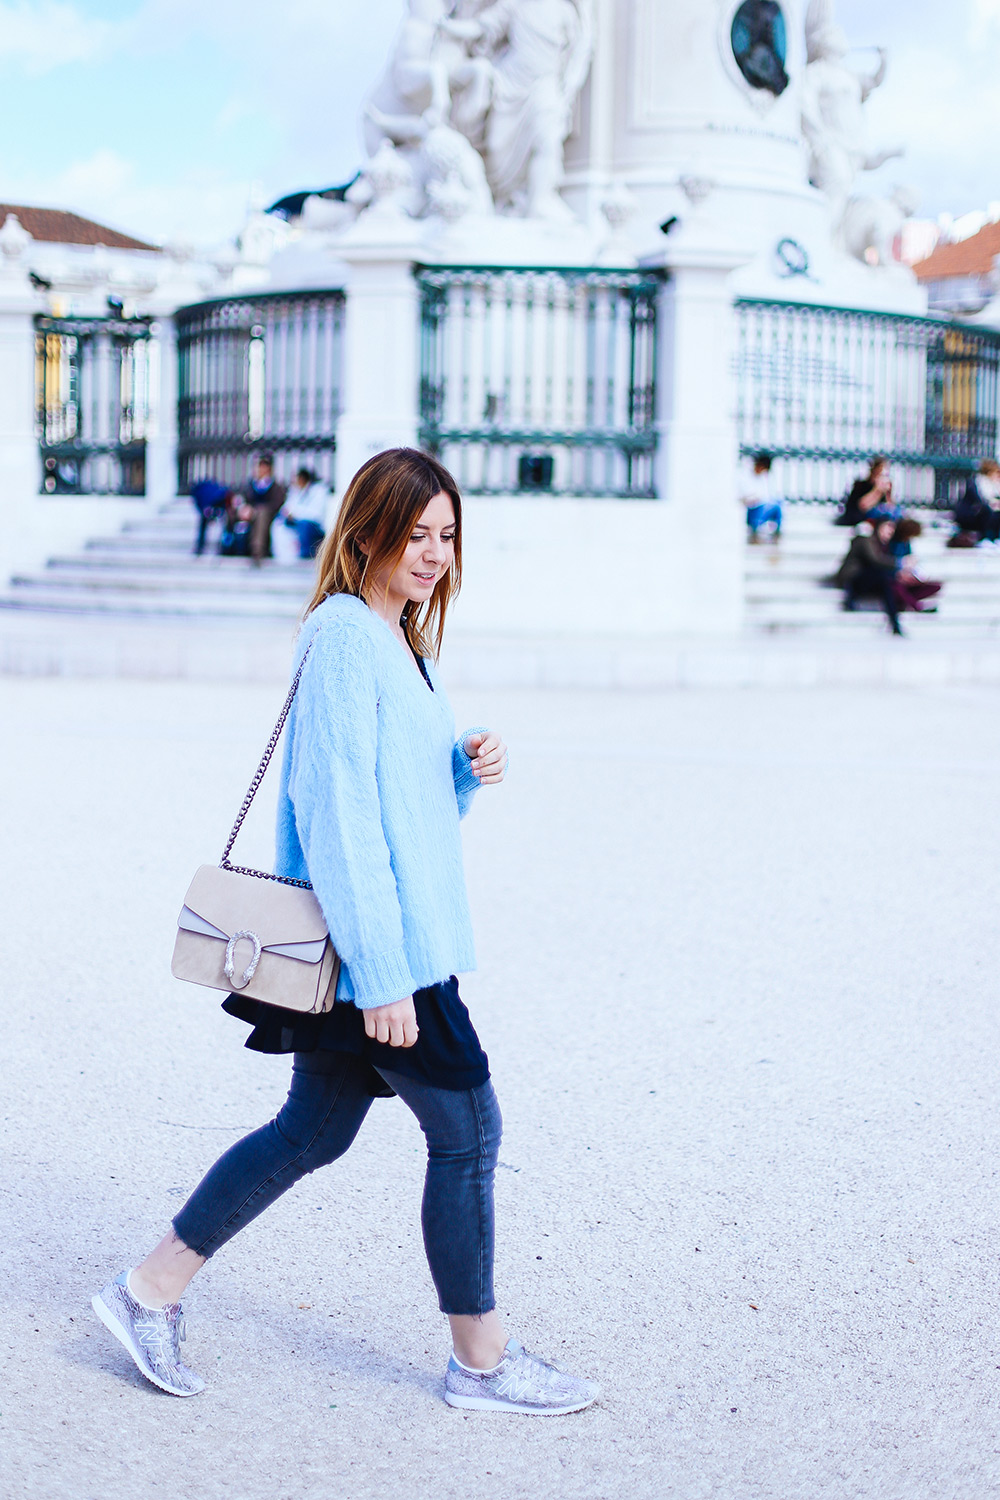 Pastel Outfit, sorbet jumper, Serenity Outfit, Spring Outfit, grey Jeans kombinieren, New Balance Sneaker, Lissabon Streetstyle, Ombre, Gucci Dionysus Outfit, Fashion Blog, whoismocca.com